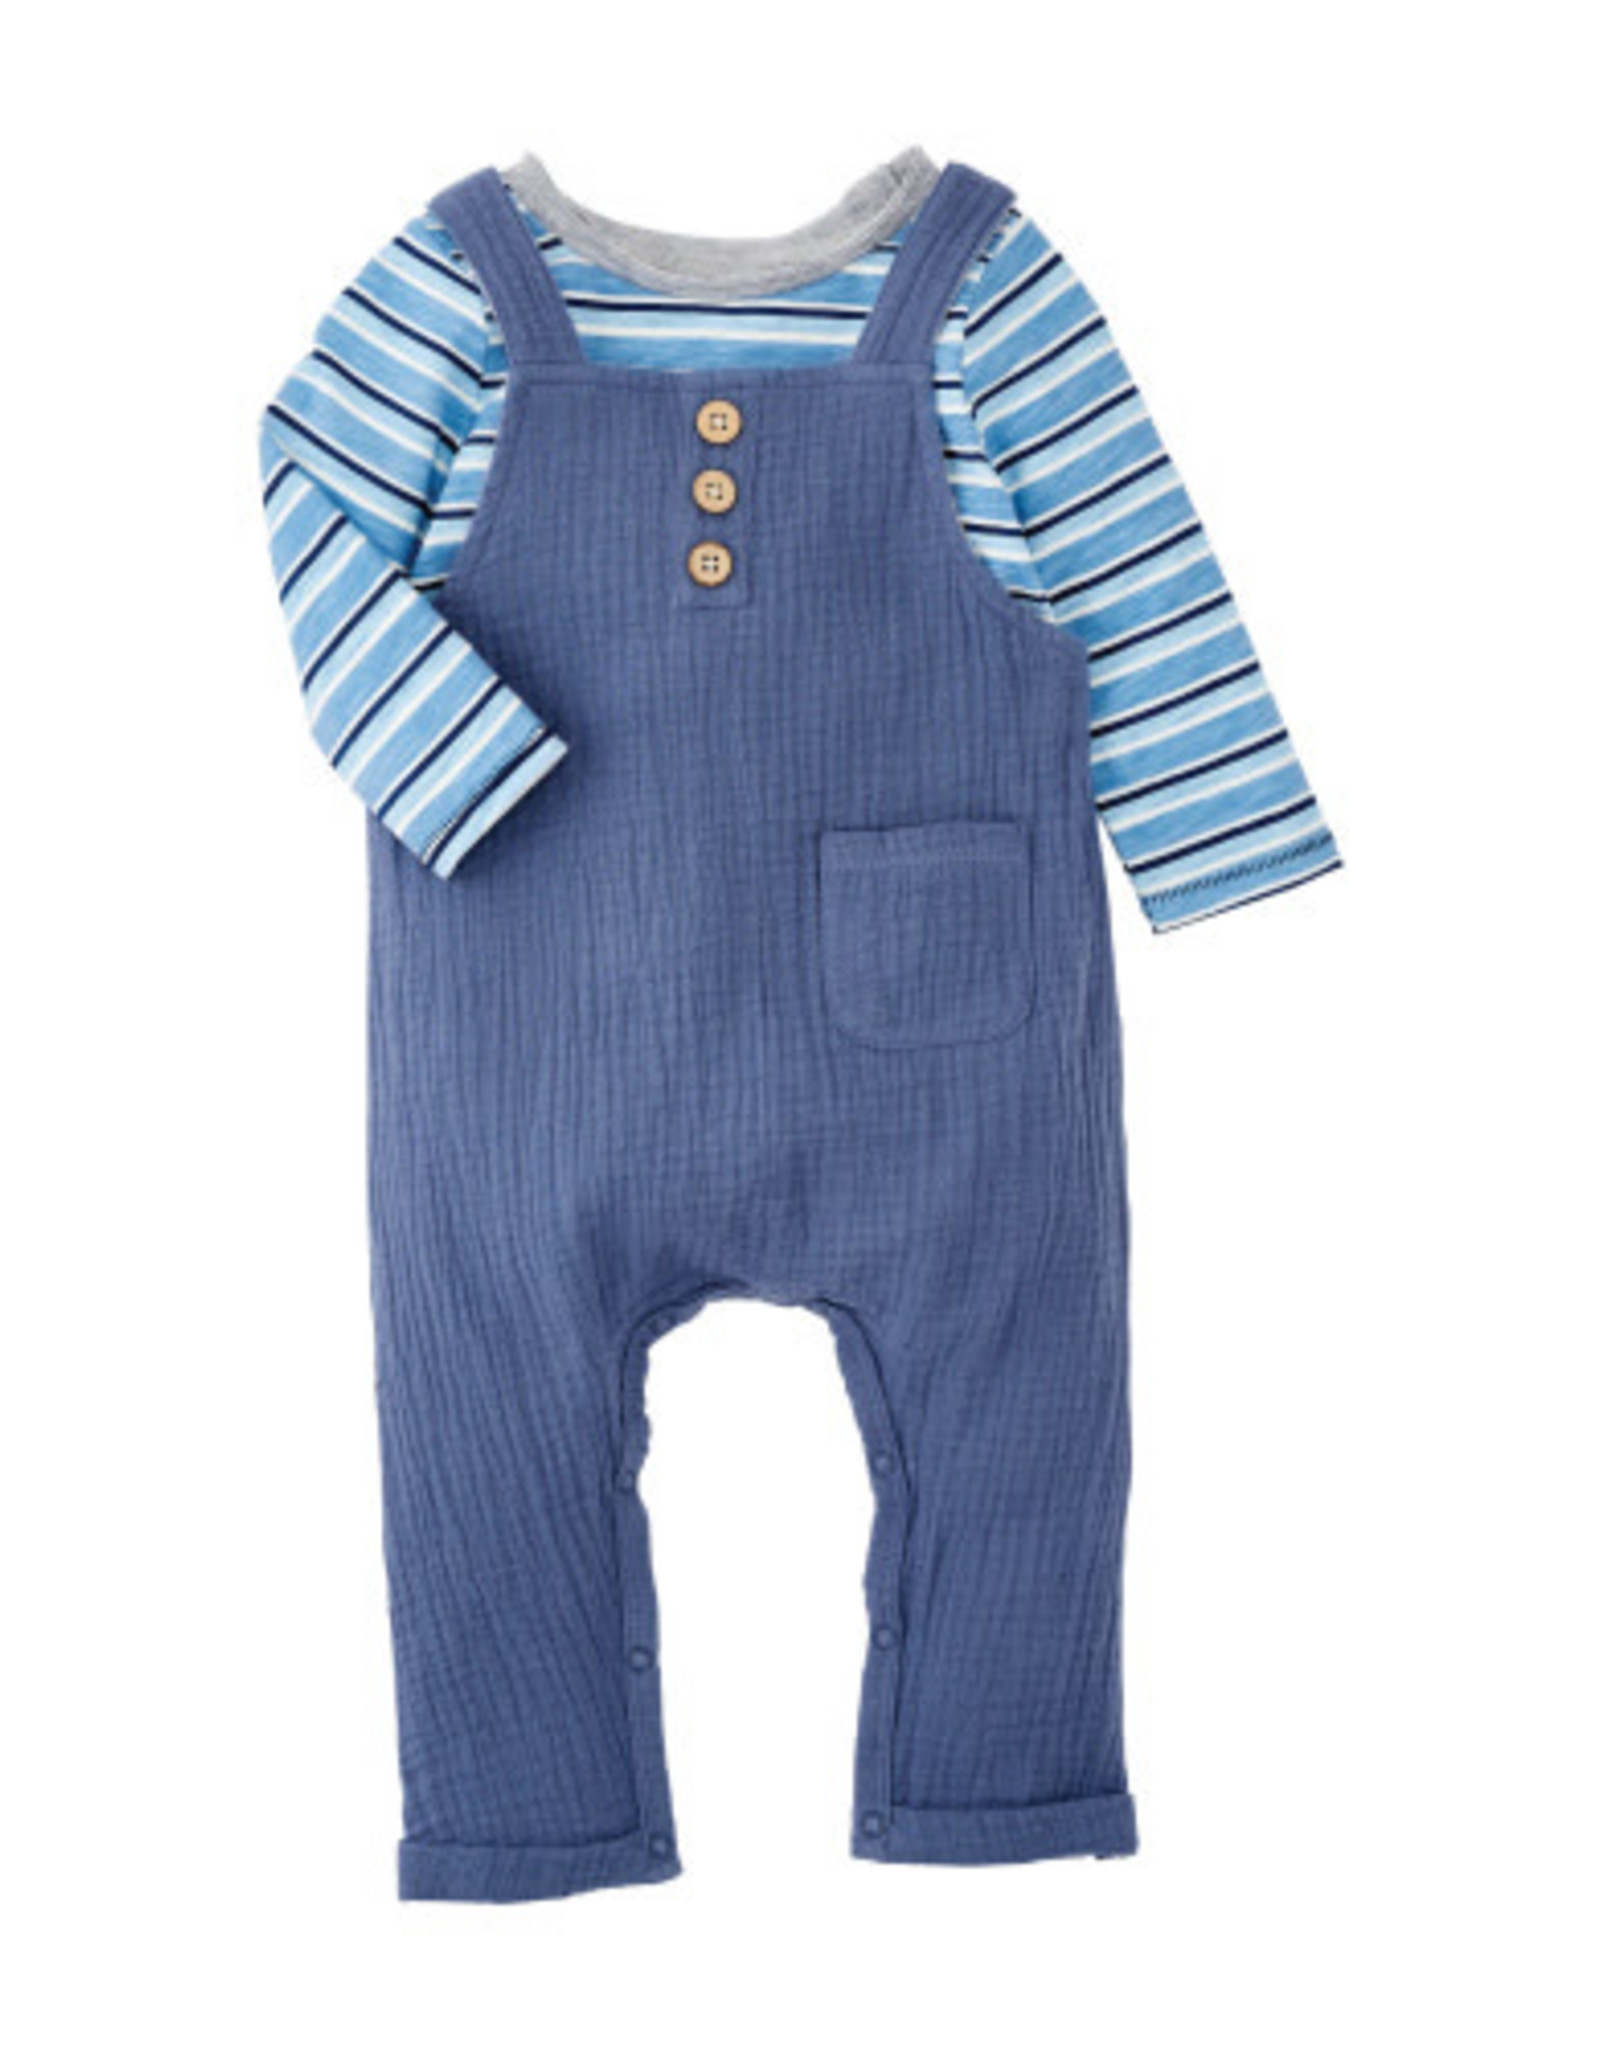 Mud pie Blue Overall and Blue Stripe Shirt